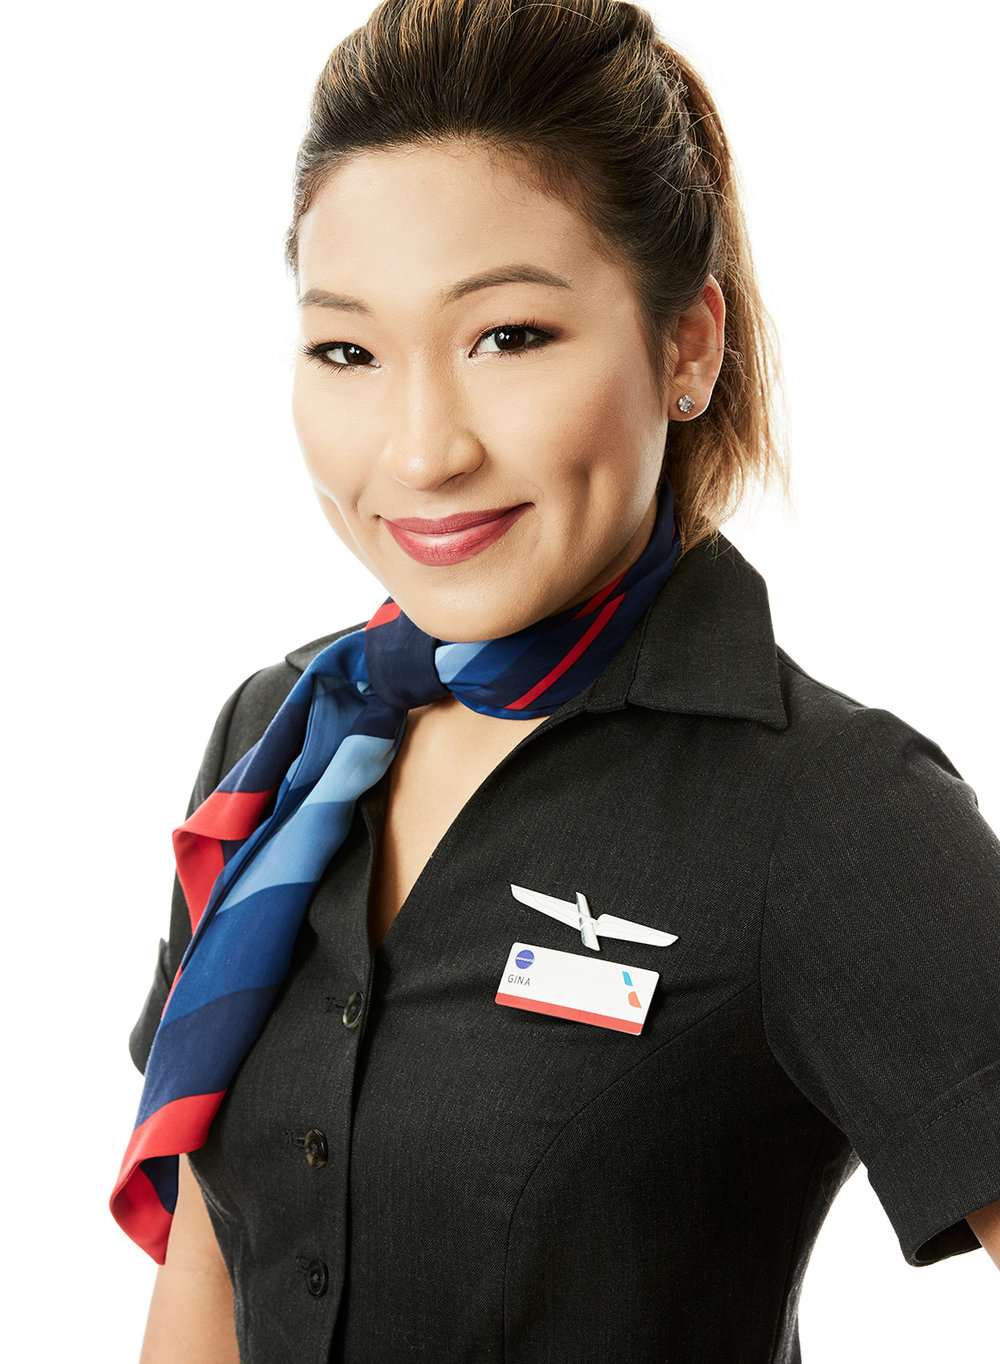 160920_AmericanAirlines_Portraits_By_BriJohnson_0001.jpg